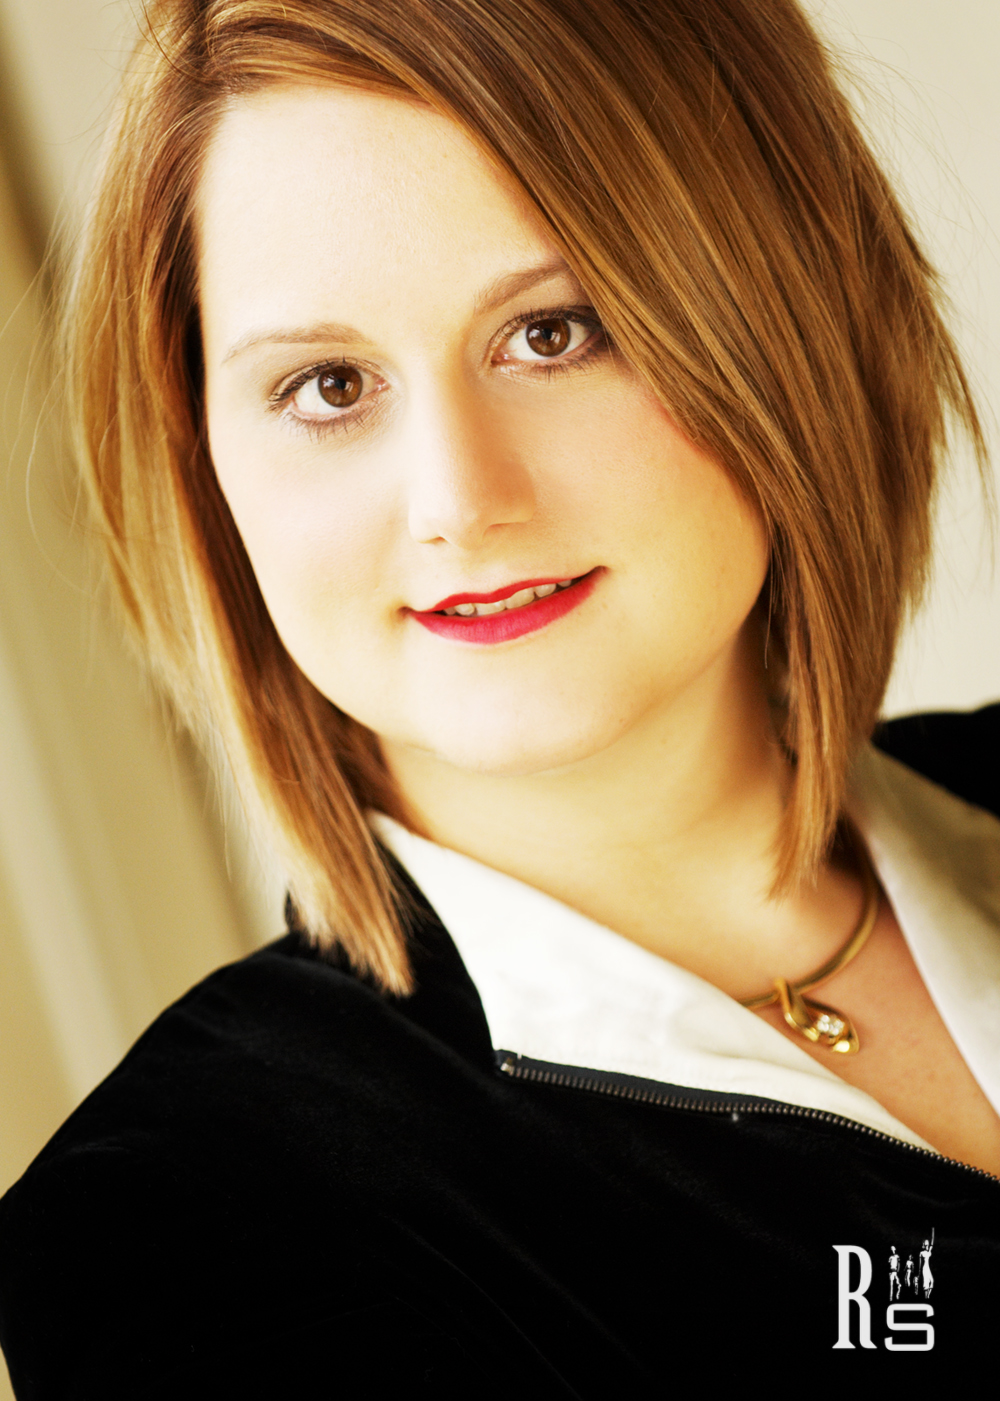 Katie Dukes, Lyric Soprano, Executive Director of Studio Forza